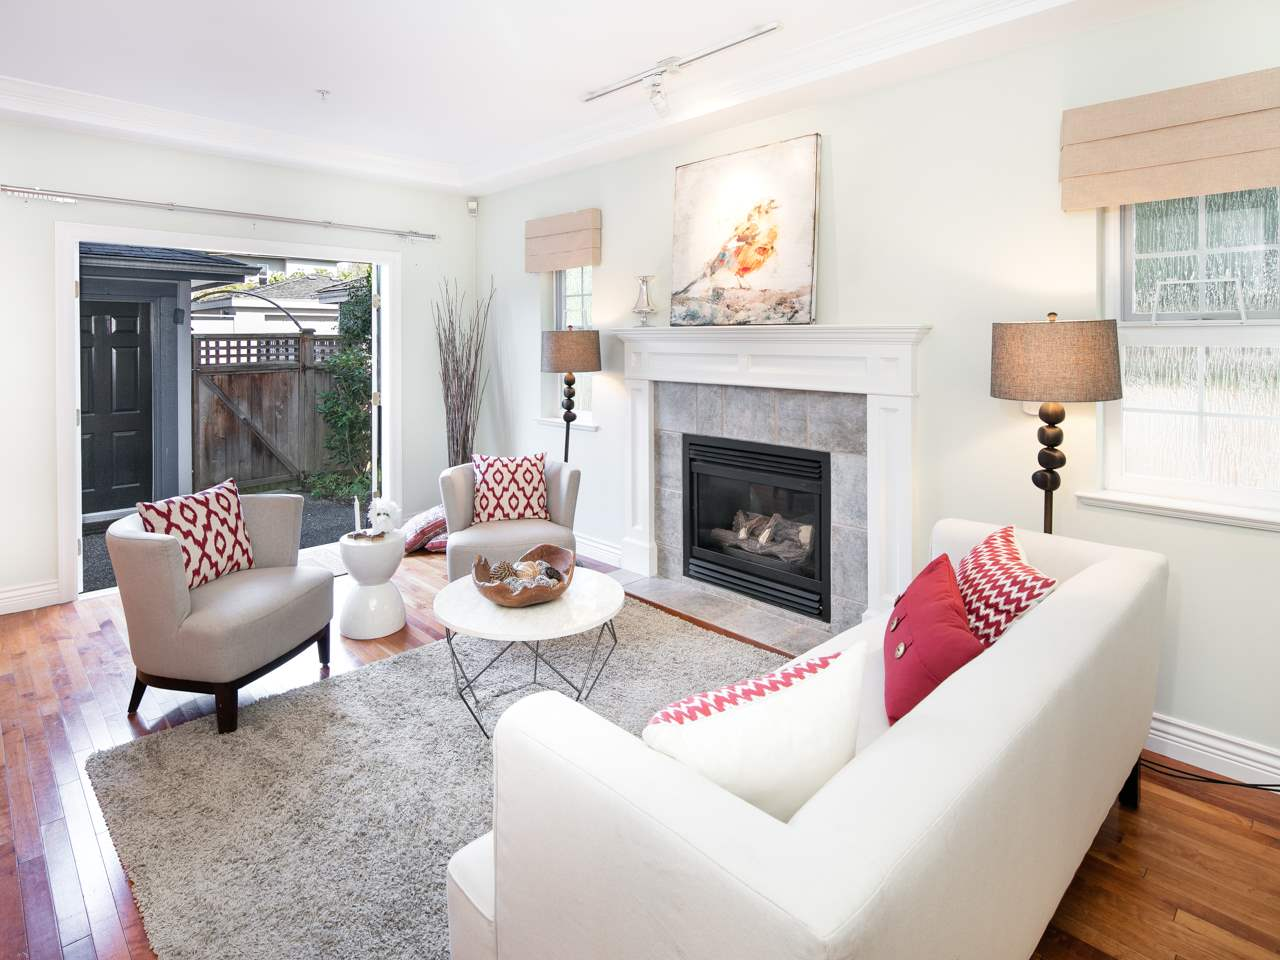 Photo 1: 1819 CREELMAN Avenue in Vancouver: Kitsilano House 1/2 Duplex for sale (Vancouver West)  : MLS® # R2120569